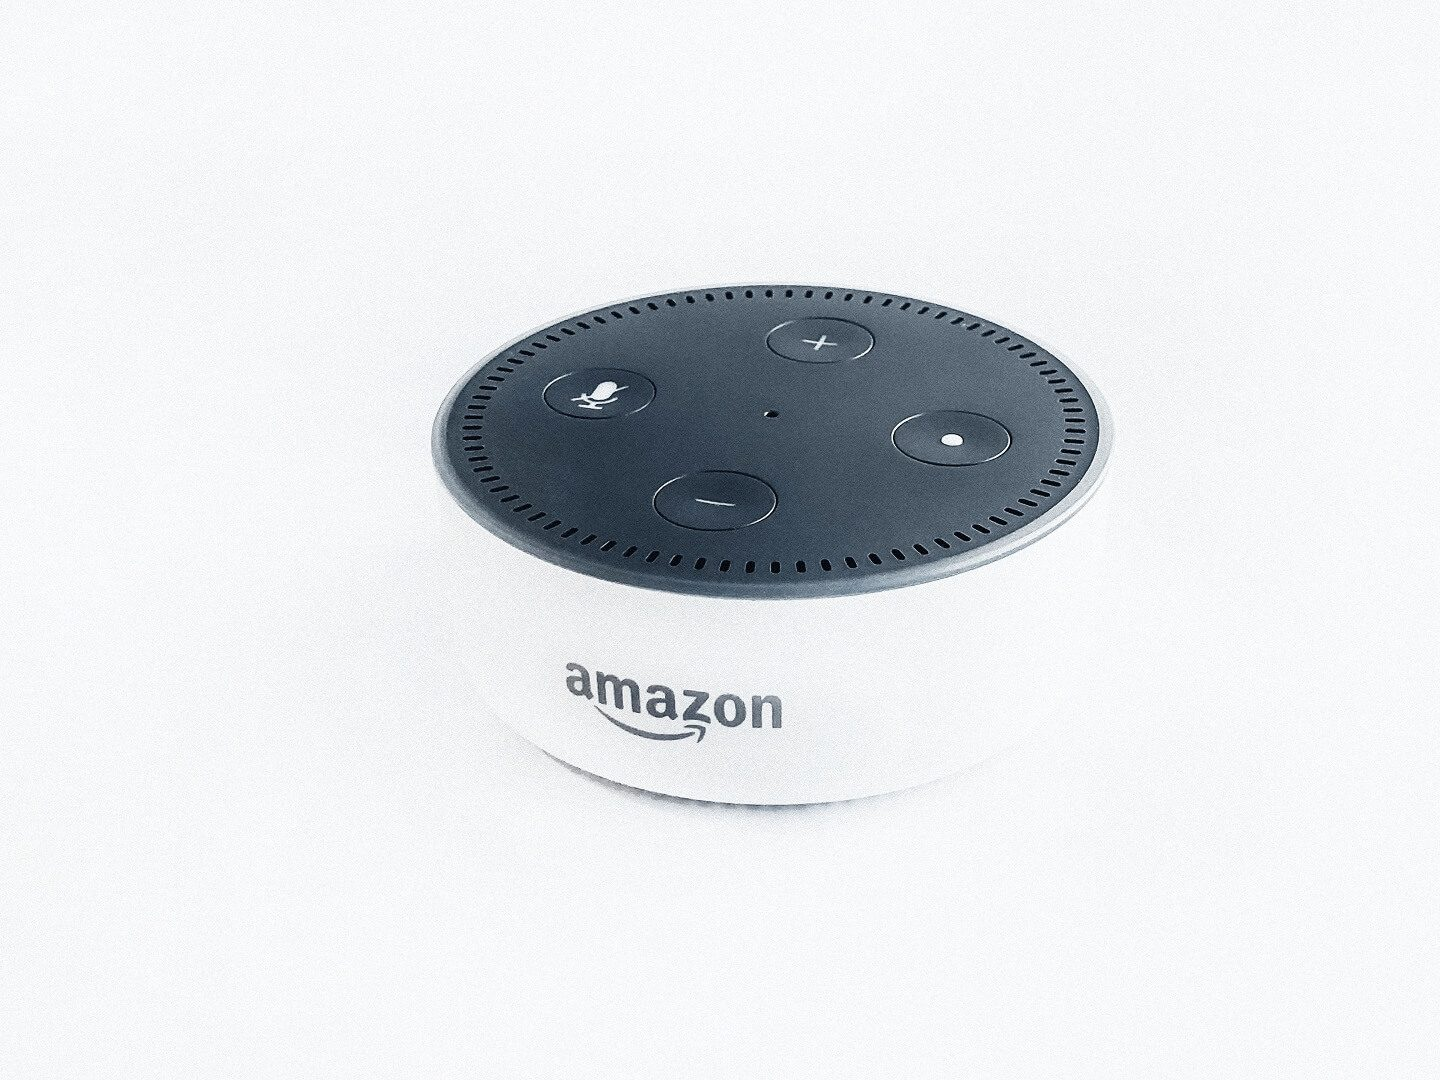 An white Amazon Alexa with a black top sitting with a completely white backdrop